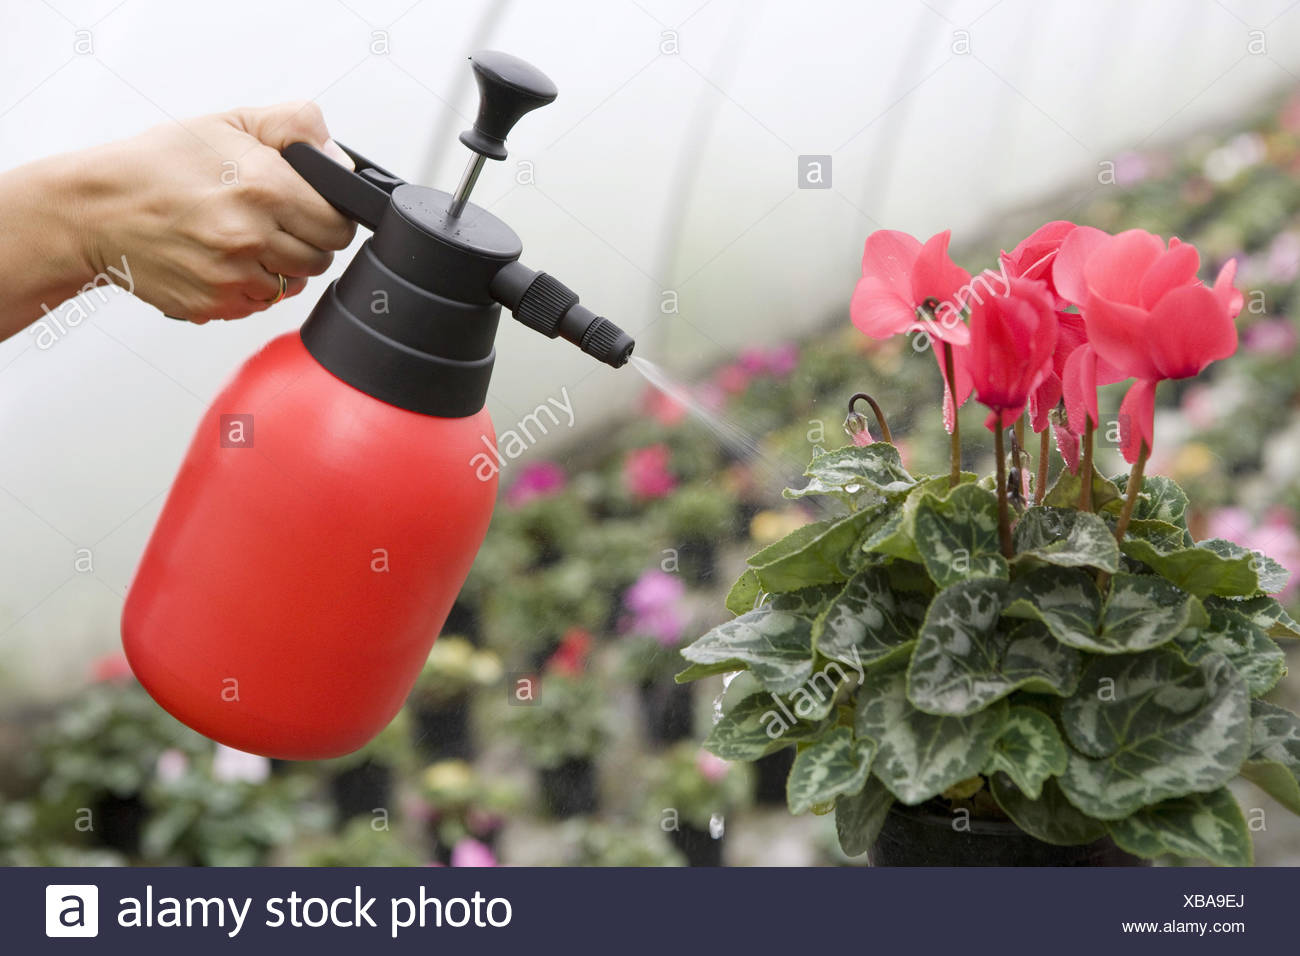 Spraying flowers in greenhouse - Stock Image